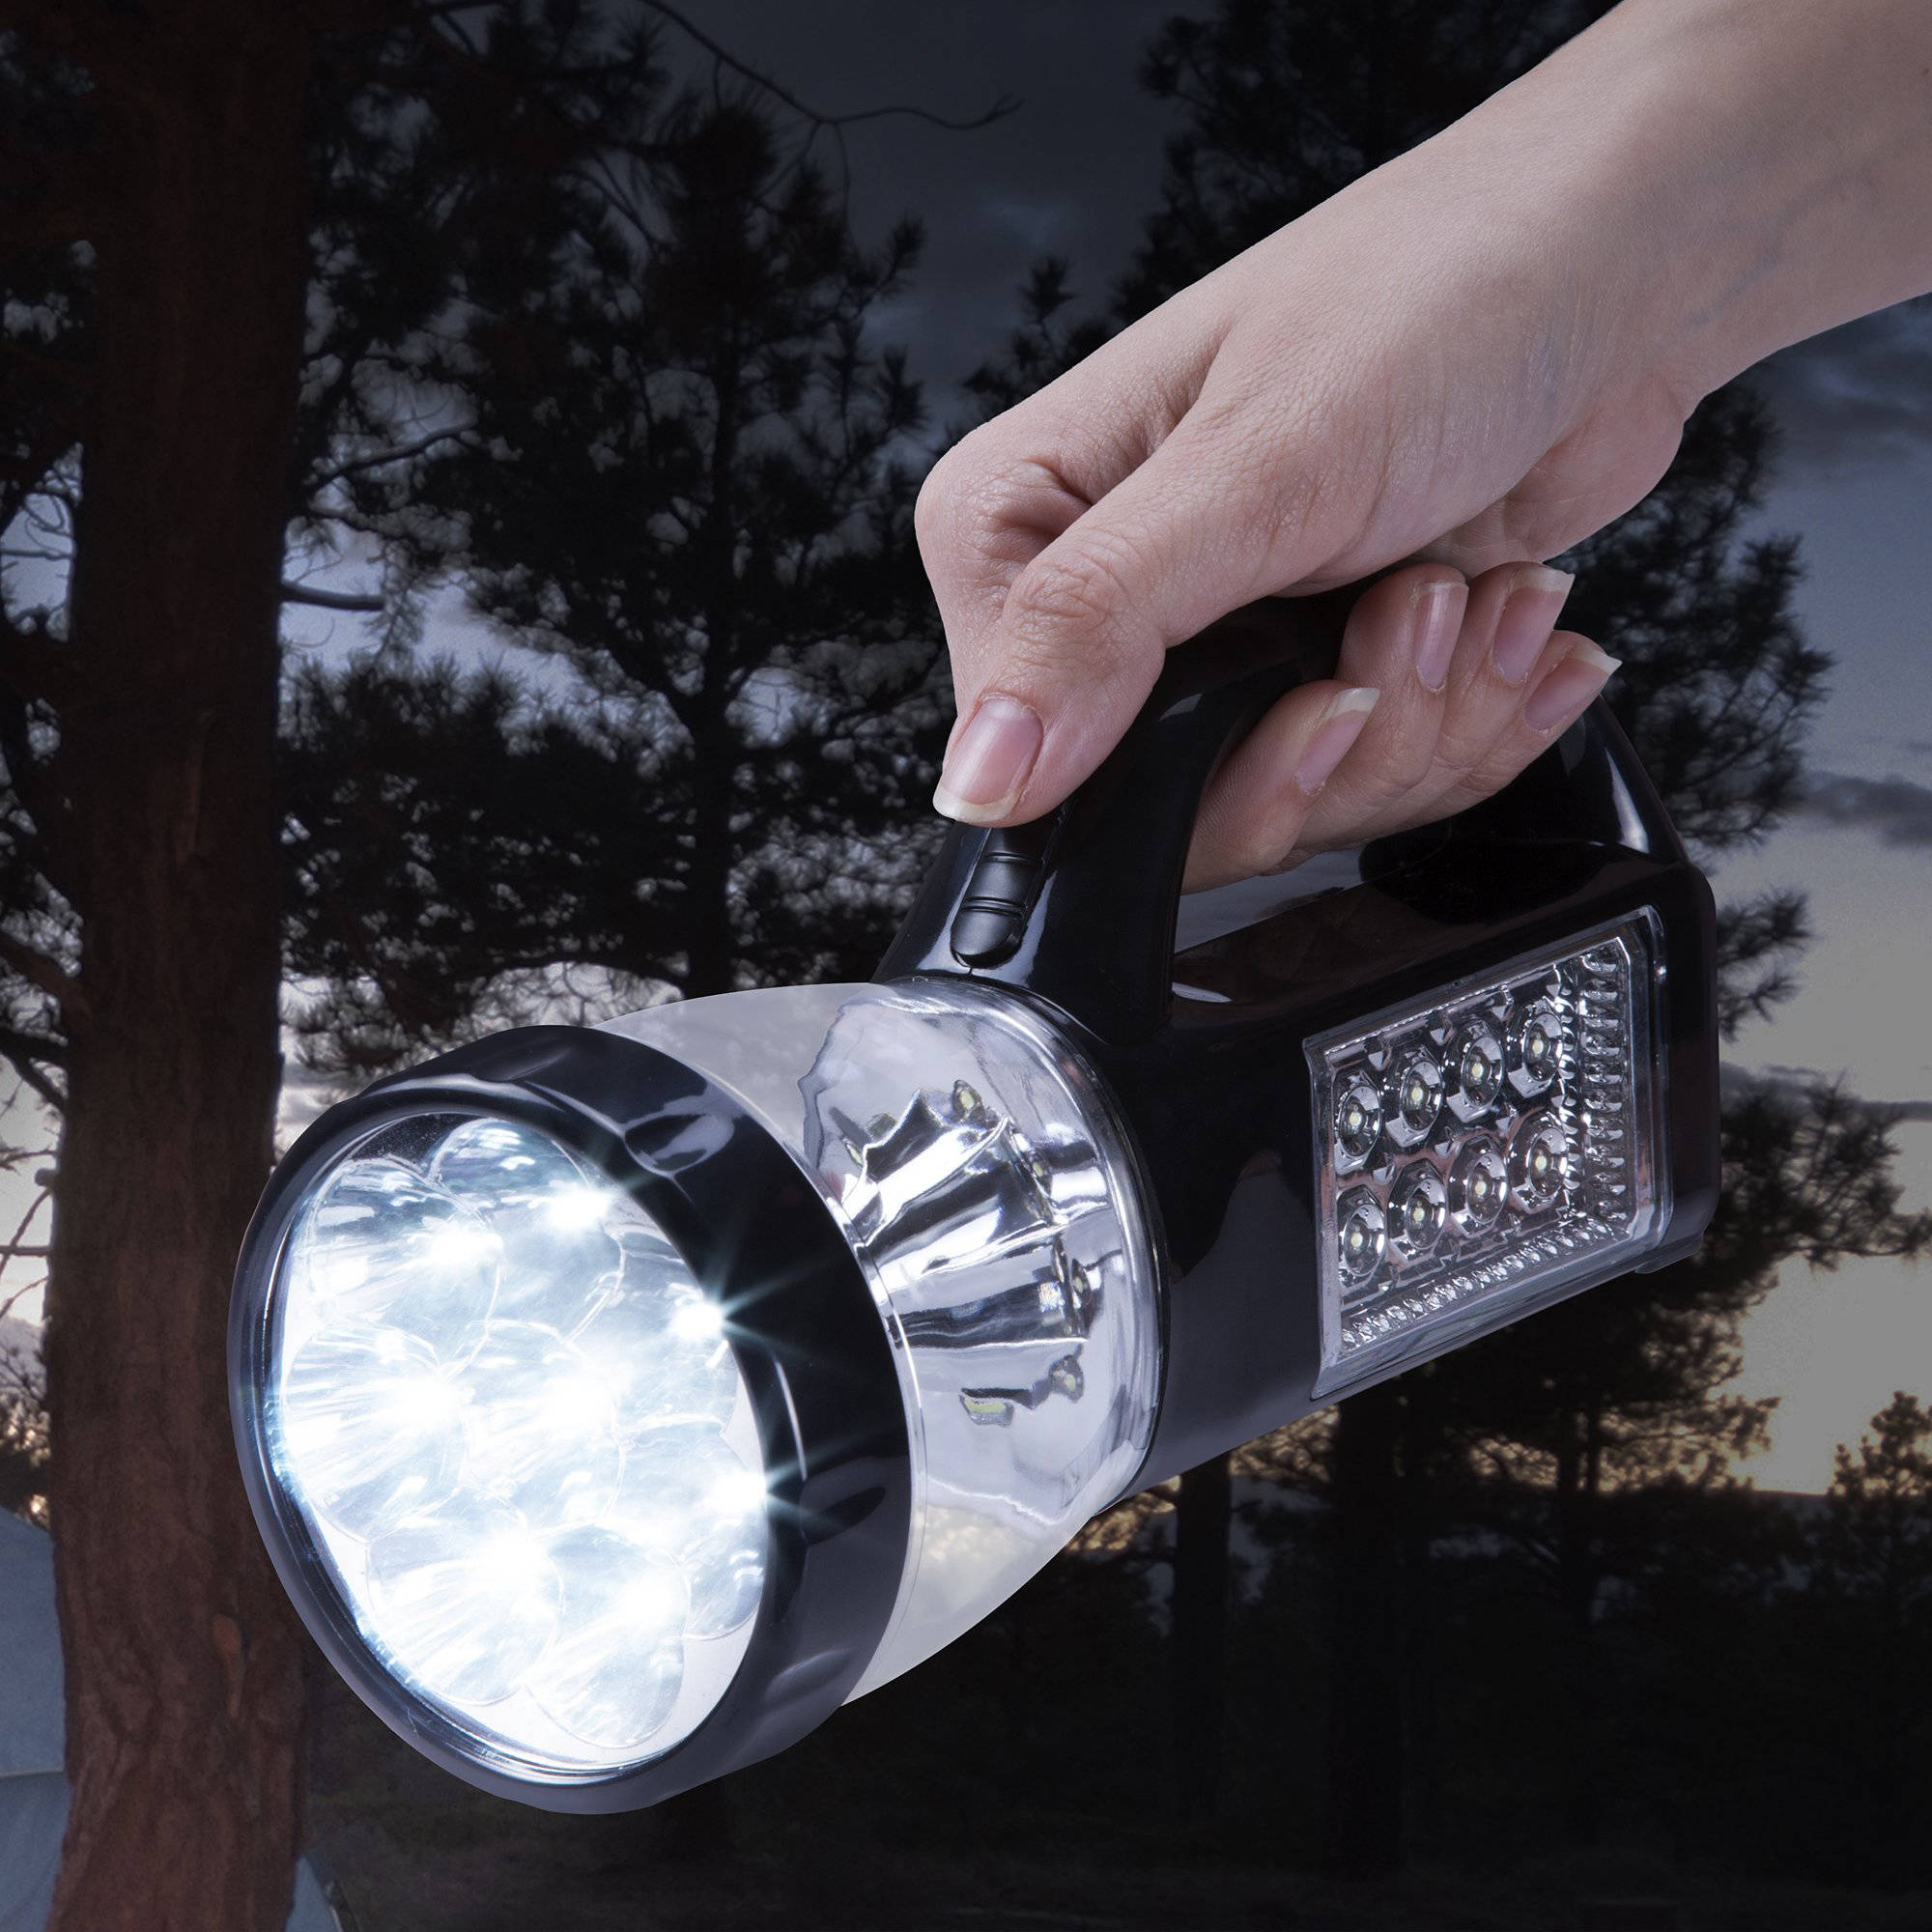 3 in 1 LED Lantern, Flashlight and Panel Light, Lightweight Camping Lantern By Wakeman... by Trademark Global LLC